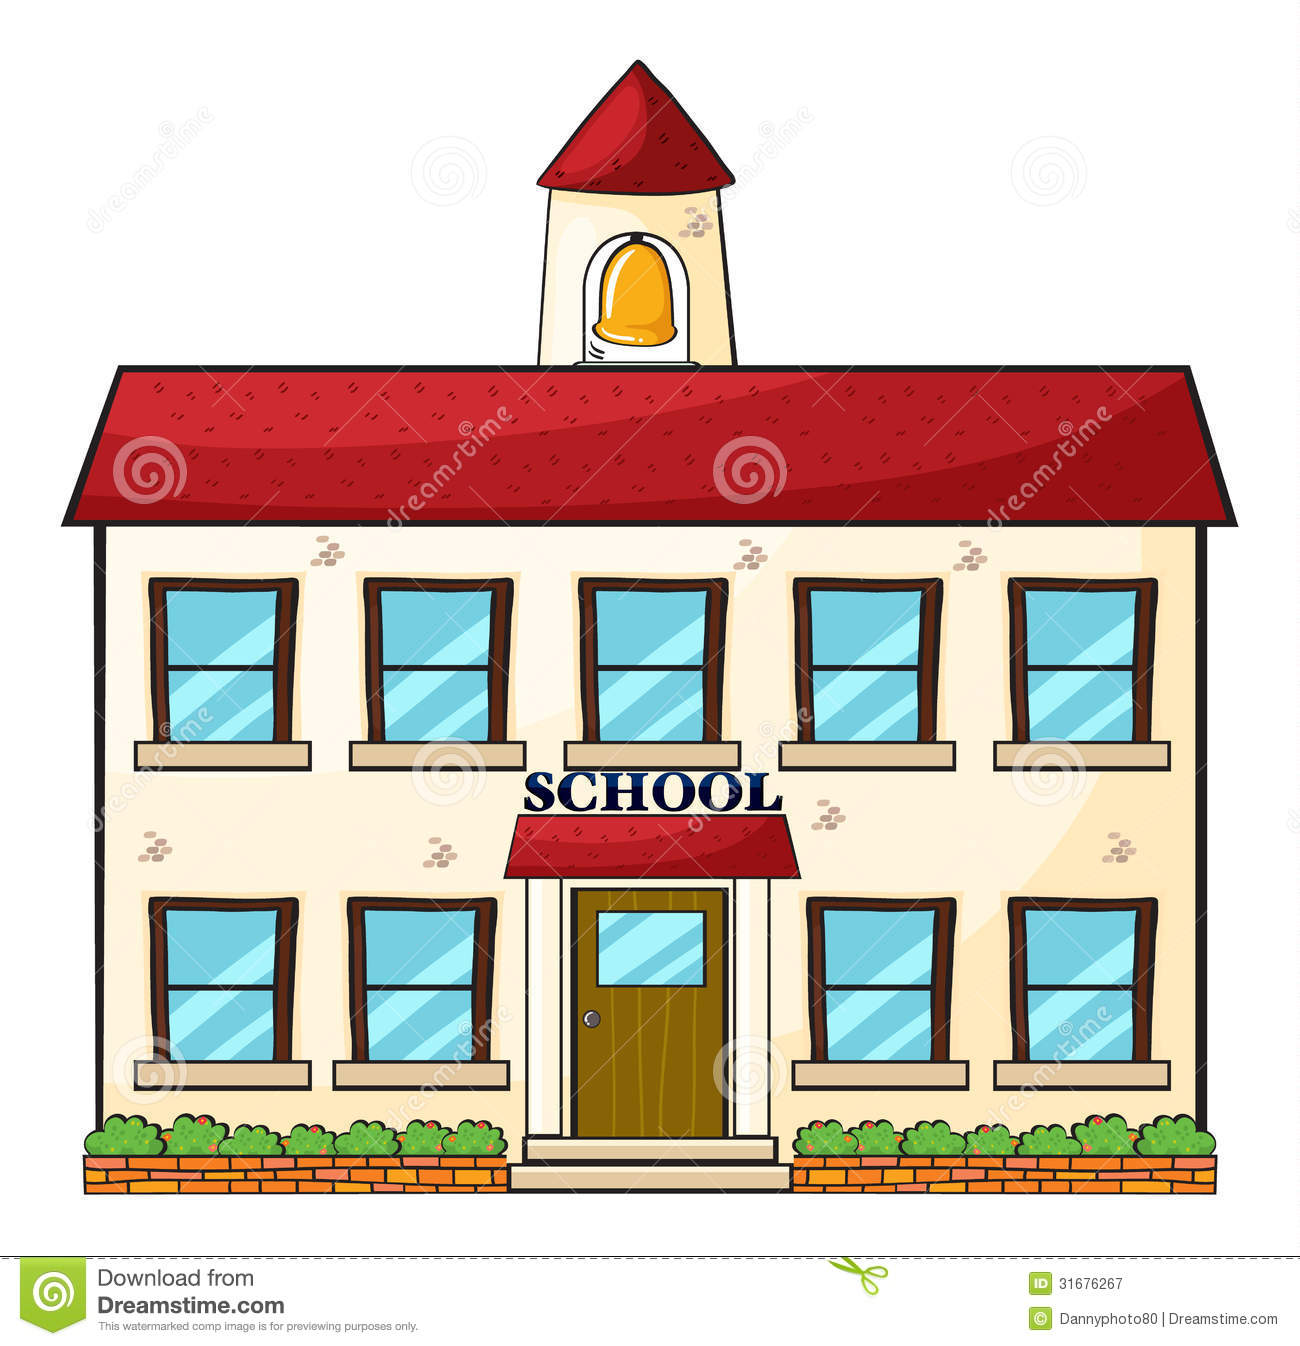 2020 Other | Images: School Building Clipart